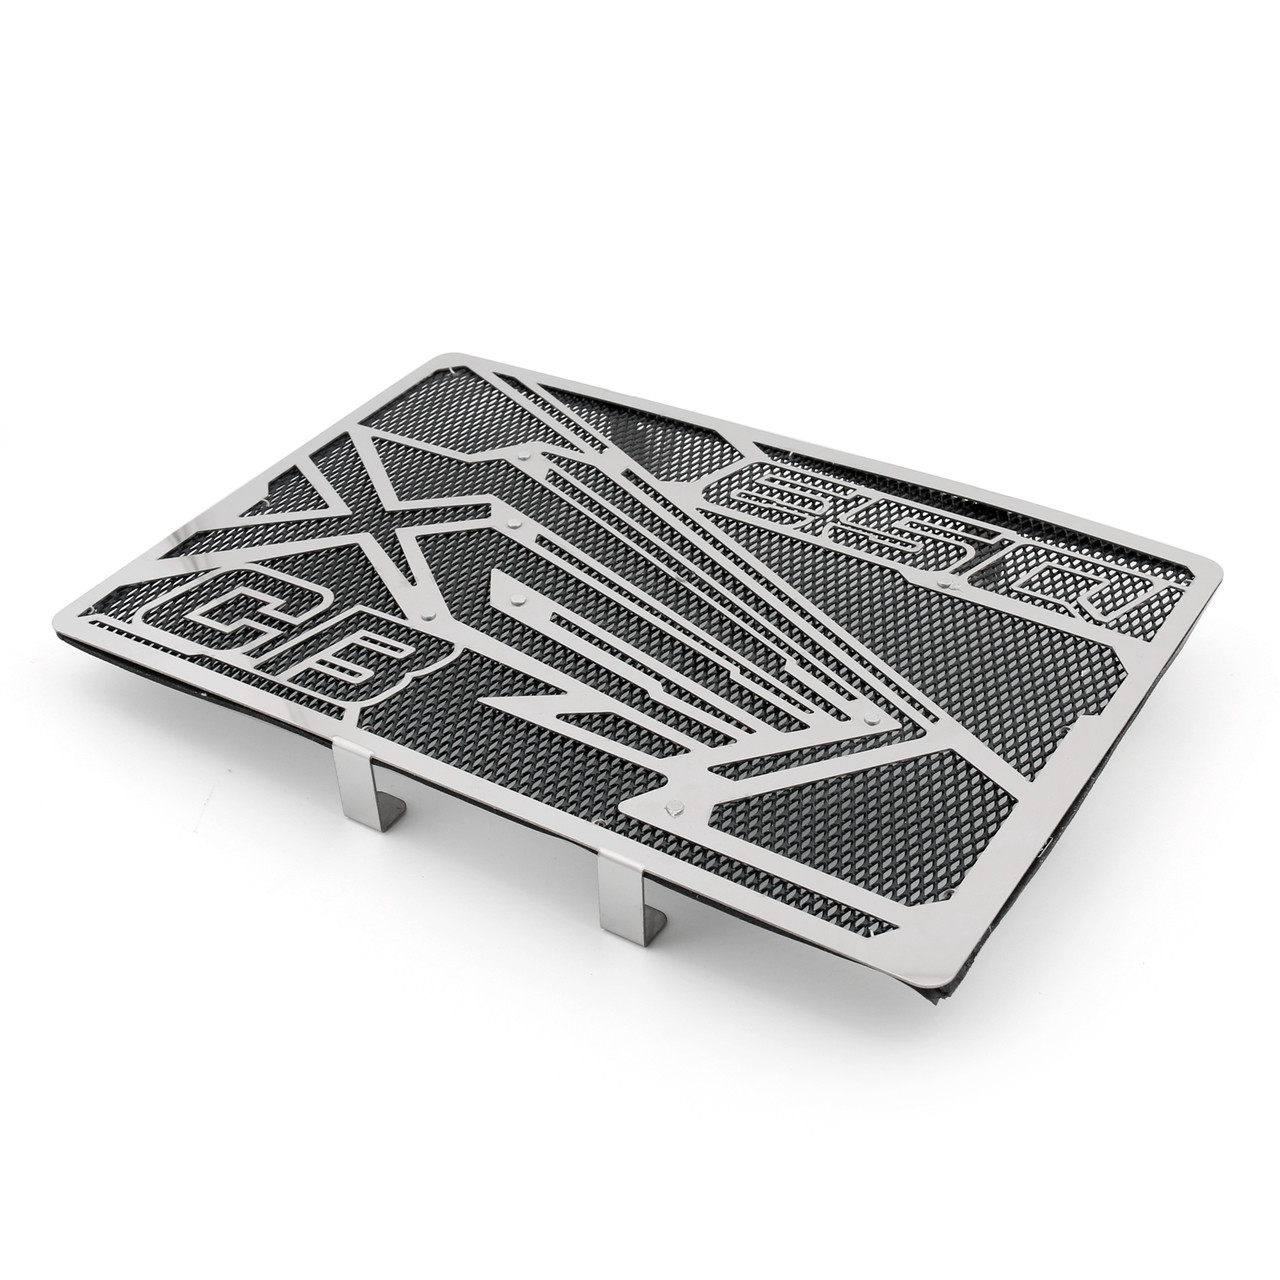 Stainless Steel Radiator Guard Cover Protector Honda CB 650F (2014-2015)